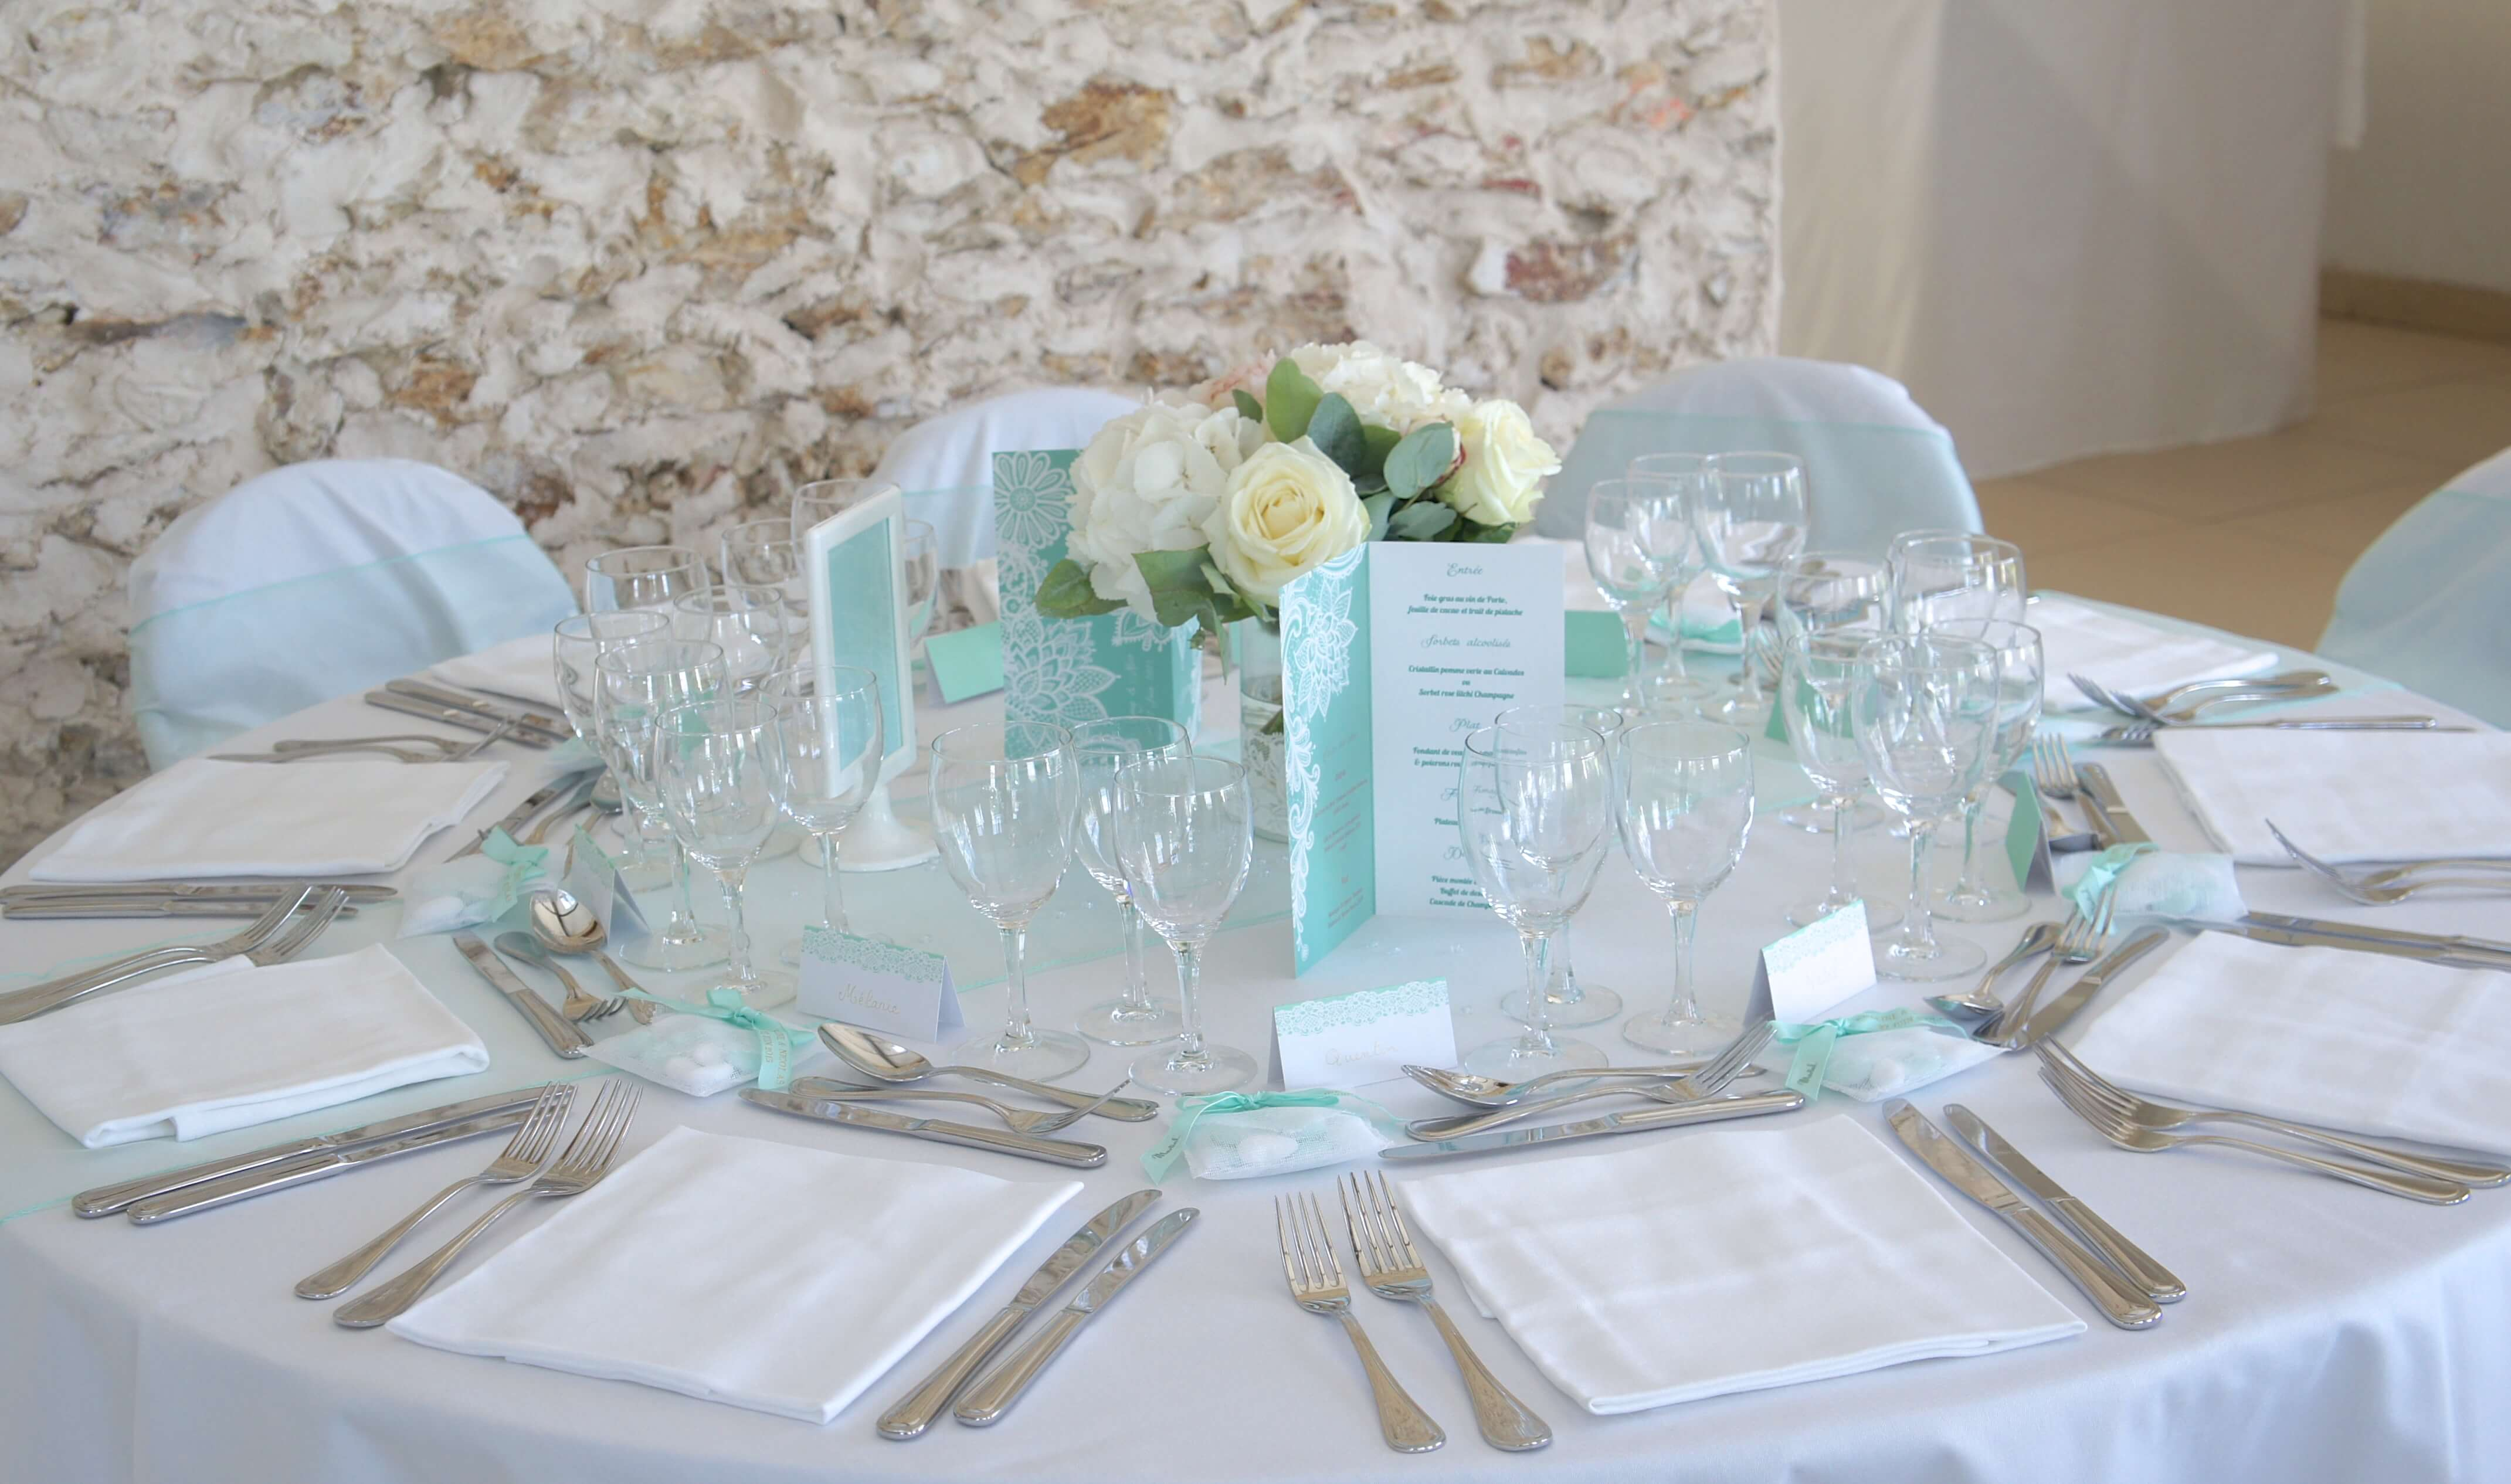 decoration de table de mariage par linda champenois, wedding designer